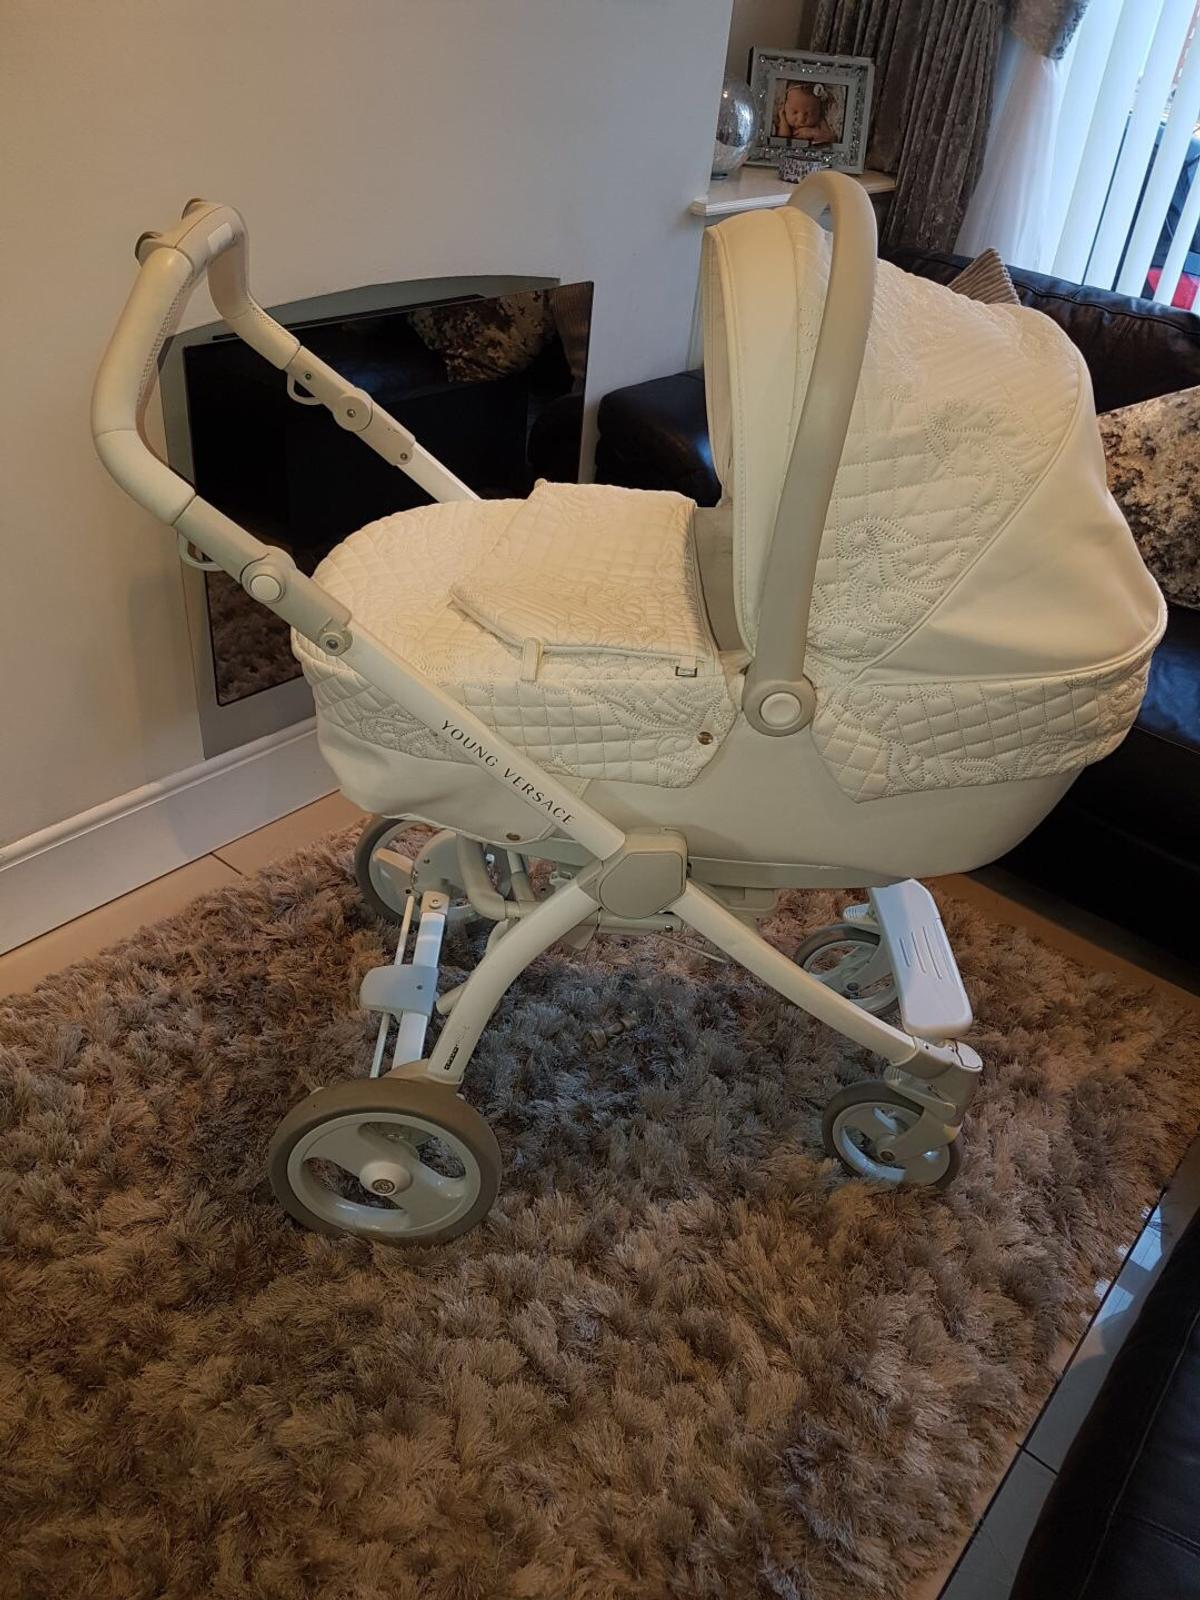 Versace Pram In L19 Liverpool For 1 750 00 For Sale Shpock